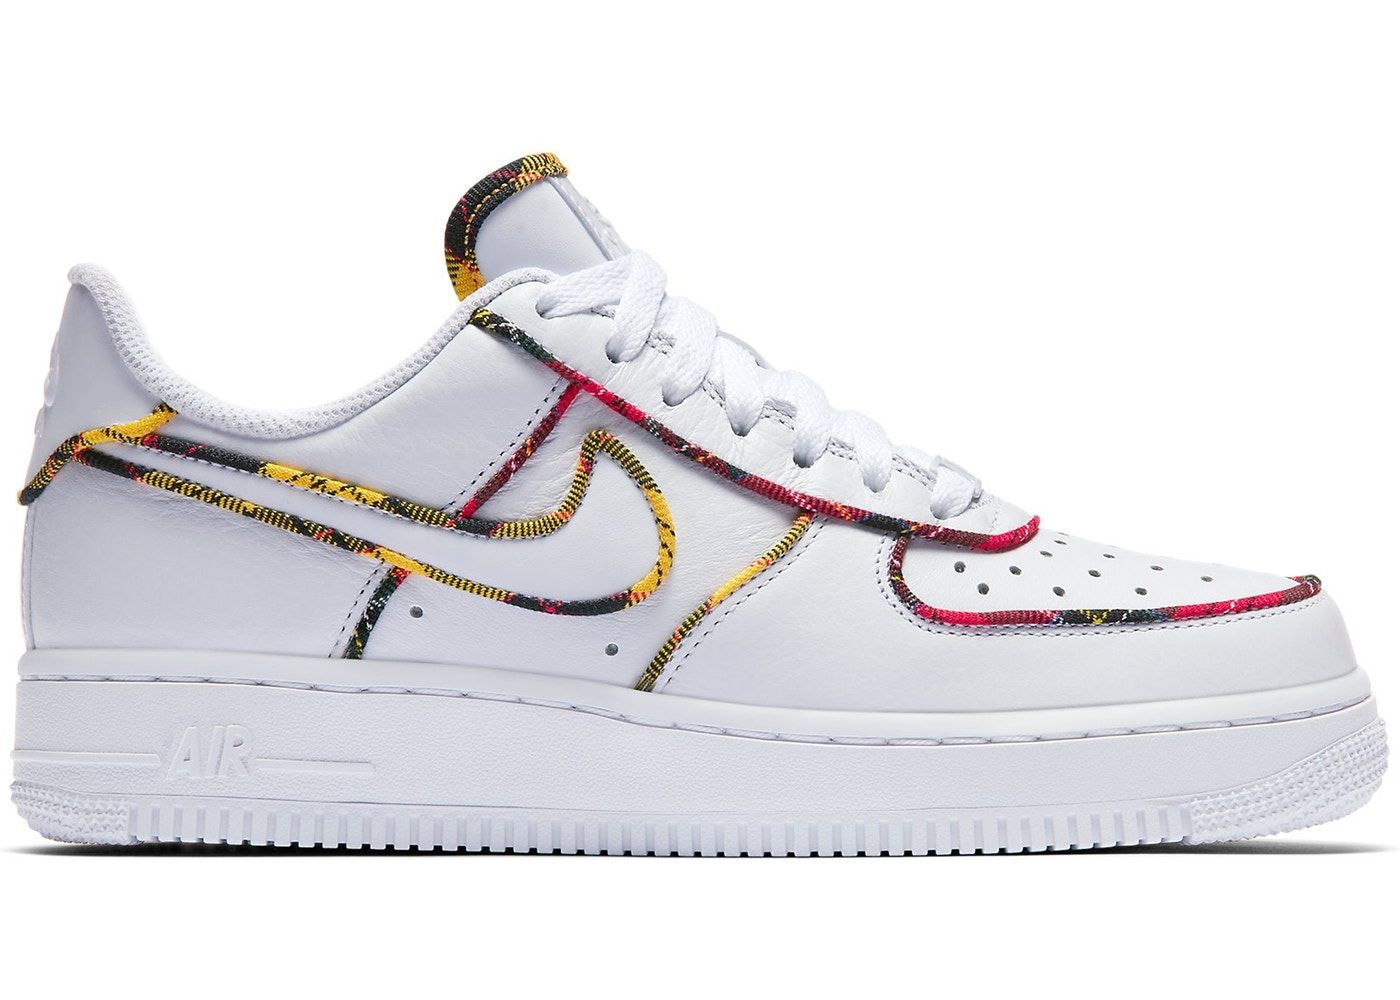 efdb91f5 Nike Force 1 Low Tartan White (W) in 2019 | Shoes | Air force 1 ...